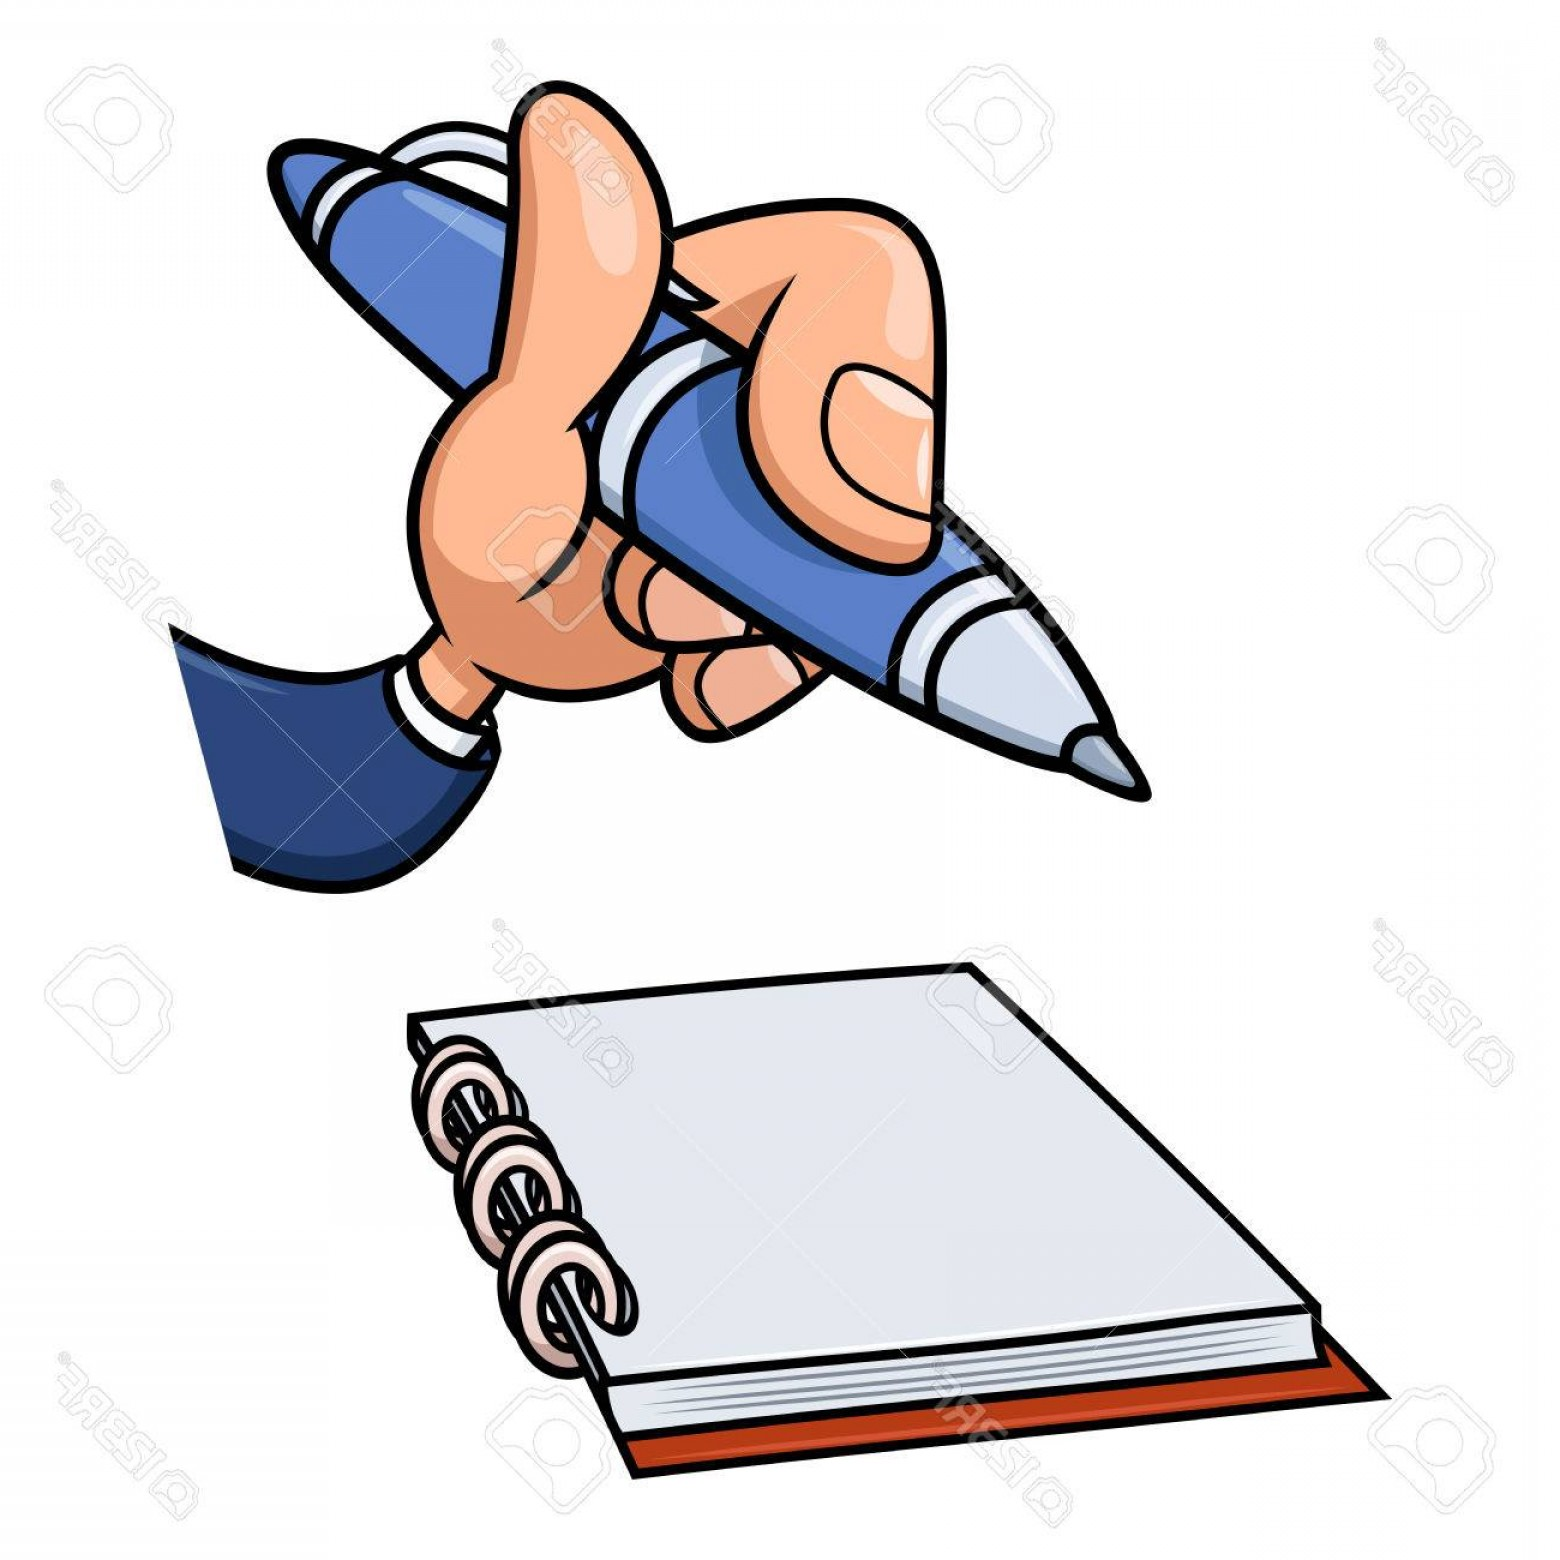 Notepad Writing Hand Vector: Photostock Vector Illustration Of The Cartoon Hand Holding Blue Pen Over Notepad And Ready To Start Writing White Back